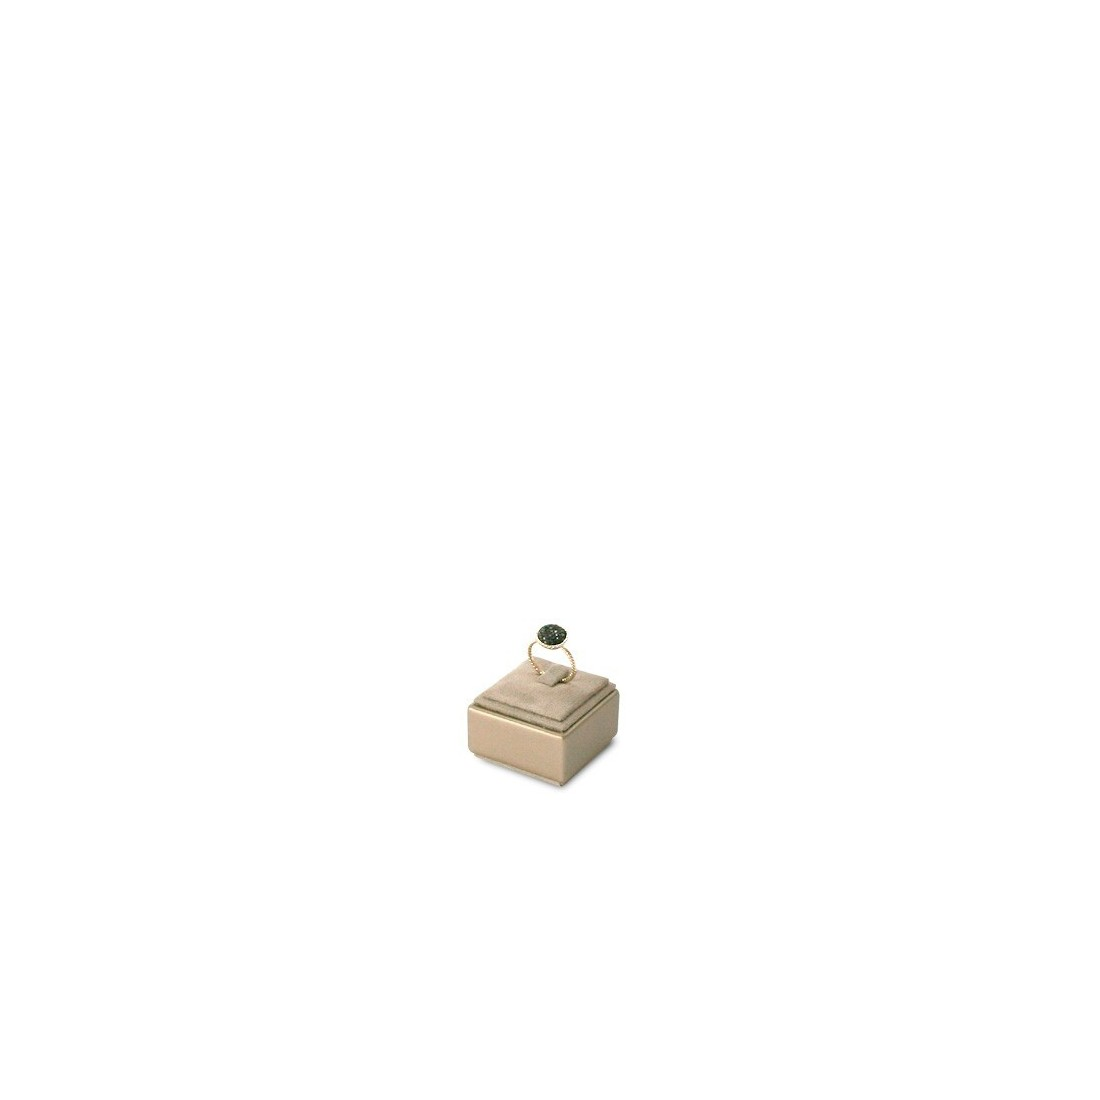 Display Stand for Ring, P